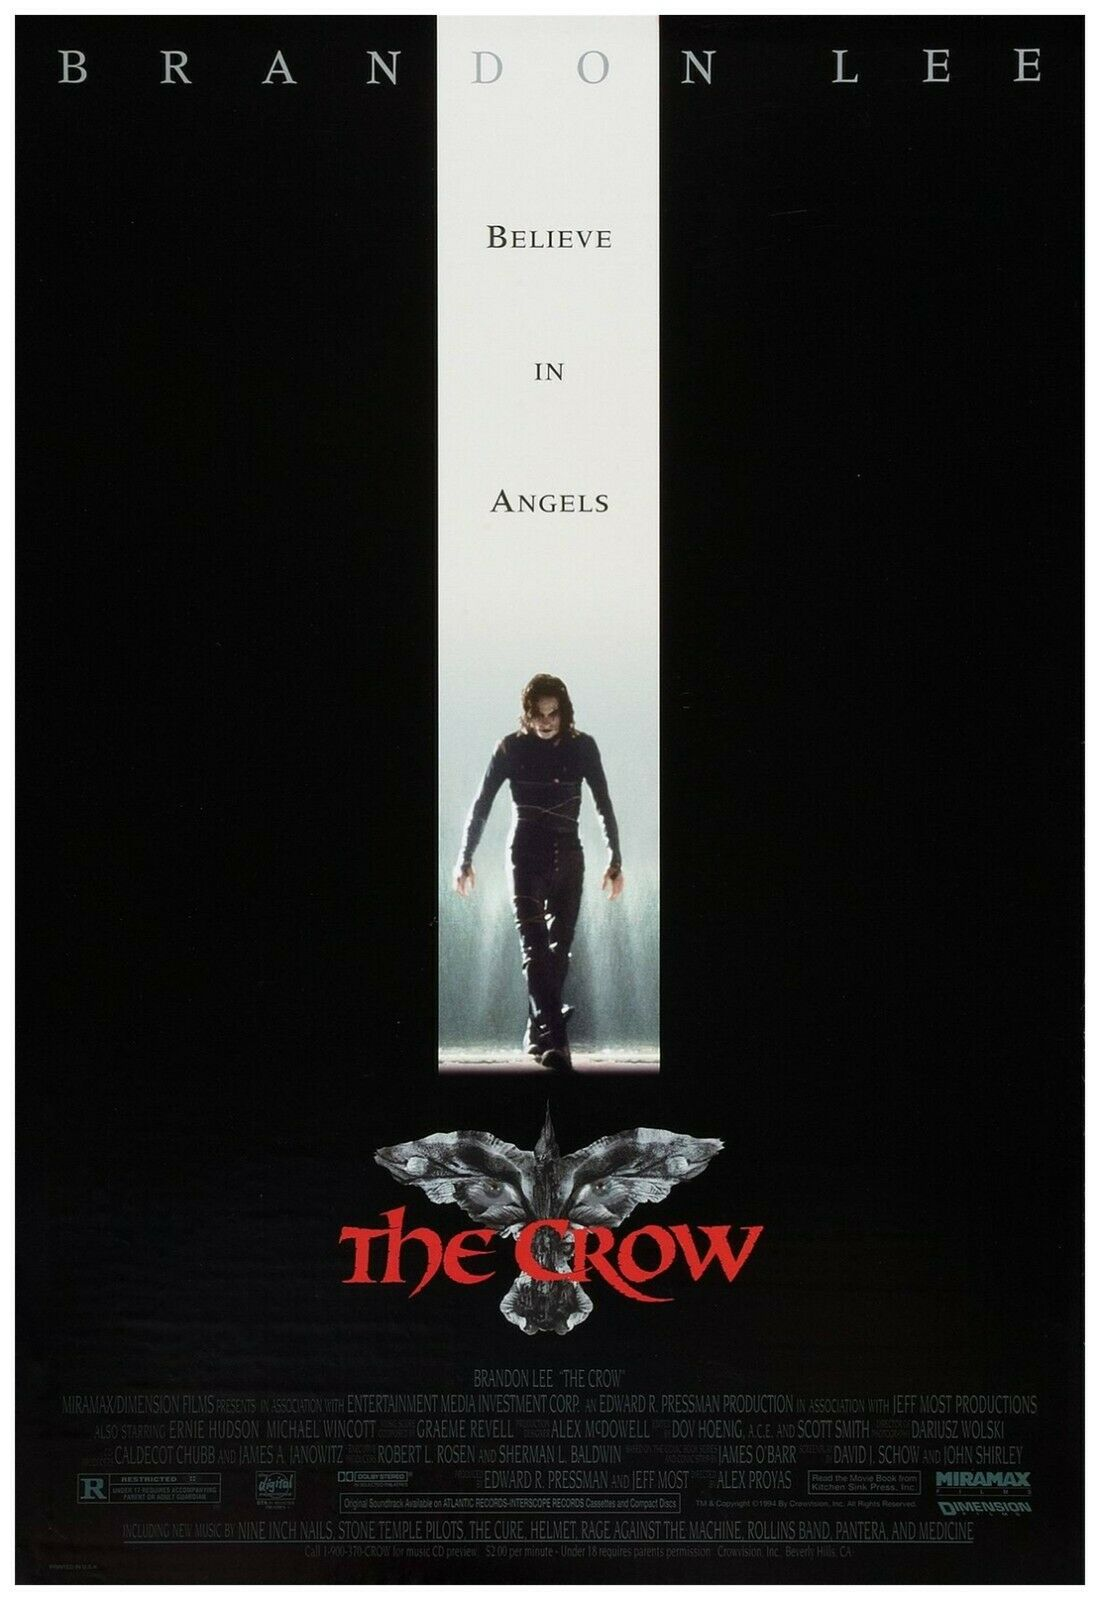 """The Crow Movie Poster Full Color Print - Wall Art - 24x36"""""""